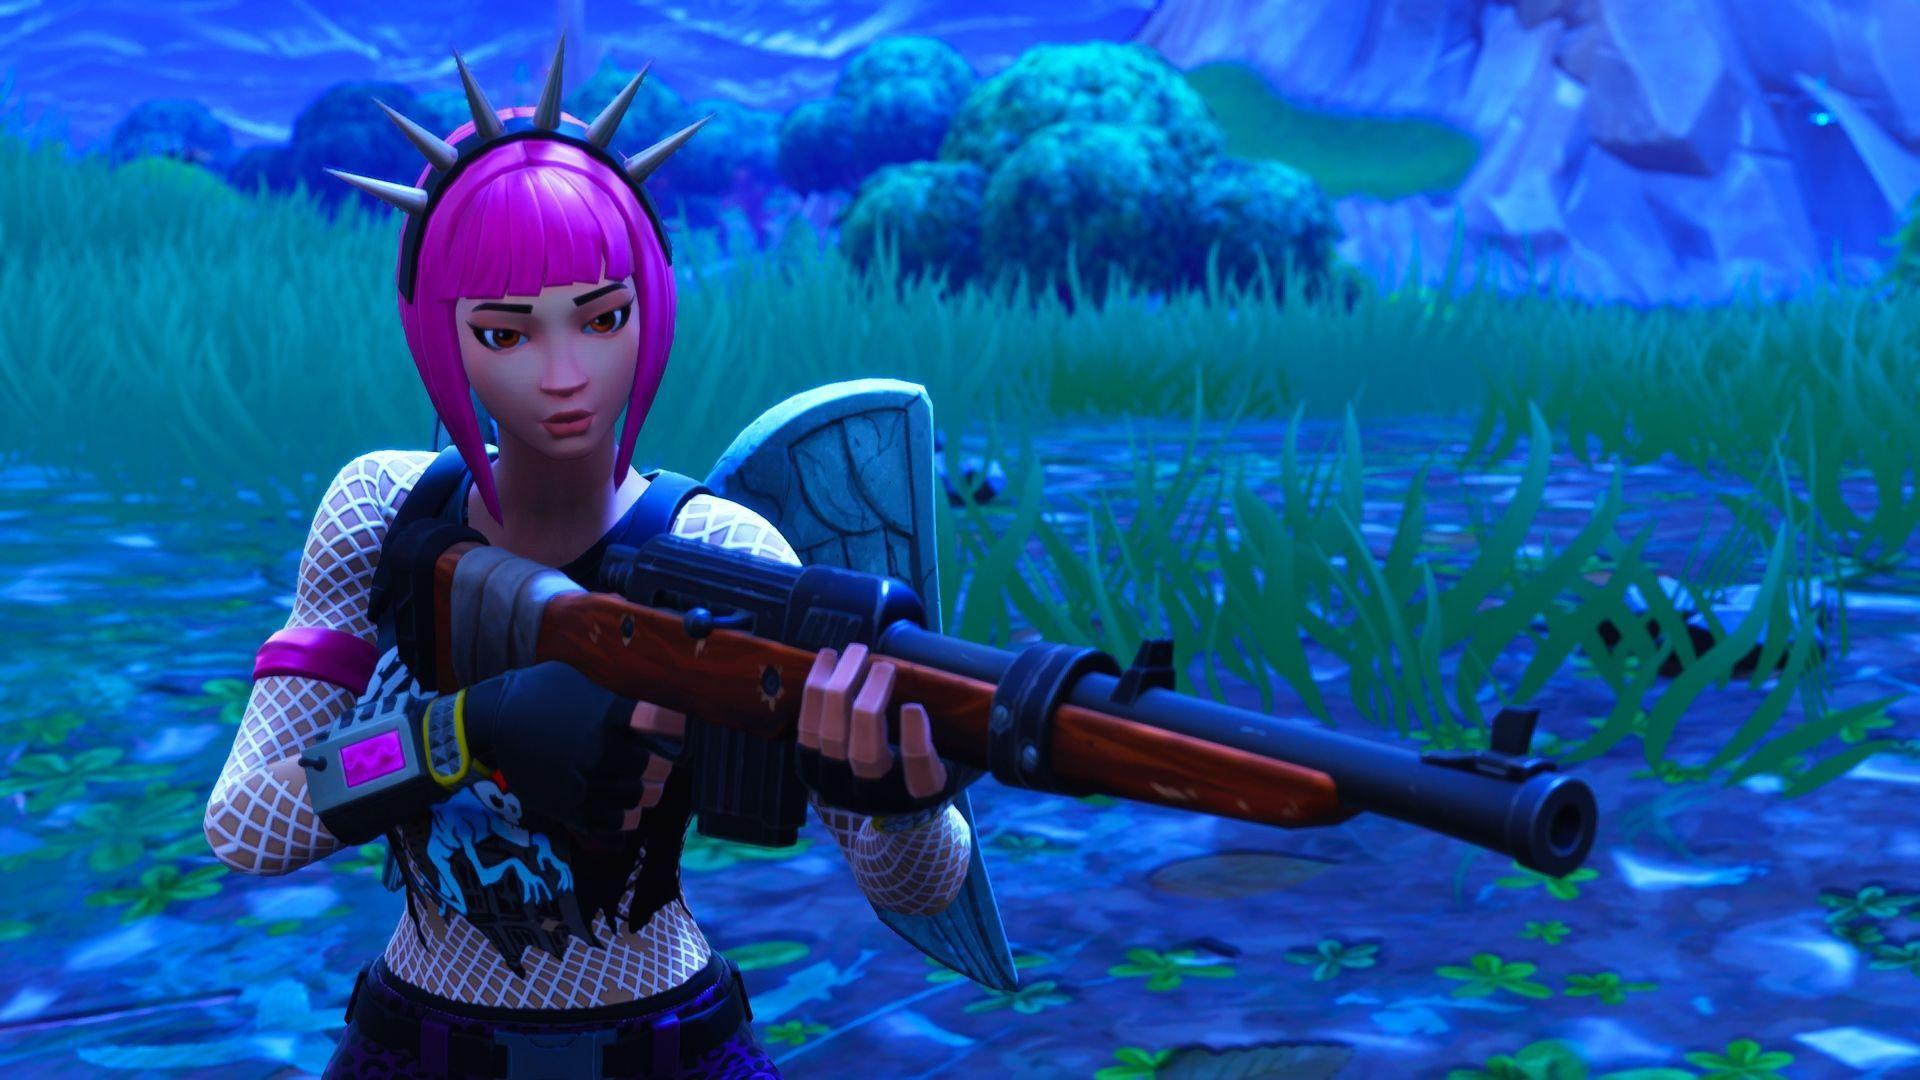 1920x1080 hd wallpaper of power chord fortnite battle royale video - power chord fortnite art